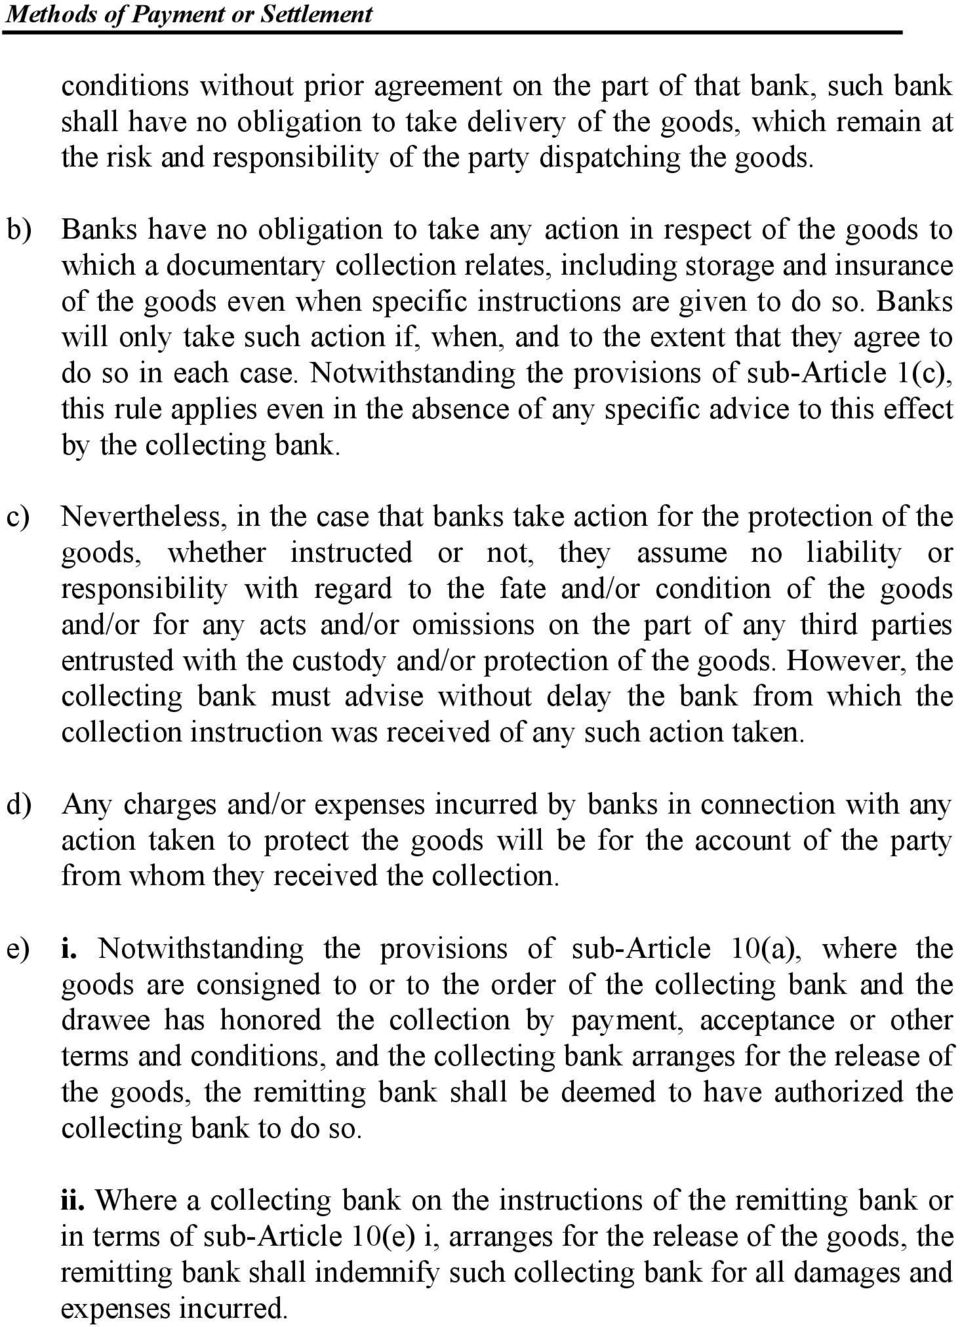 b) Banks have no obligation to take any action in respect of the goods to which a documentary collection relates, including storage and insurance of the goods even when specific instructions are